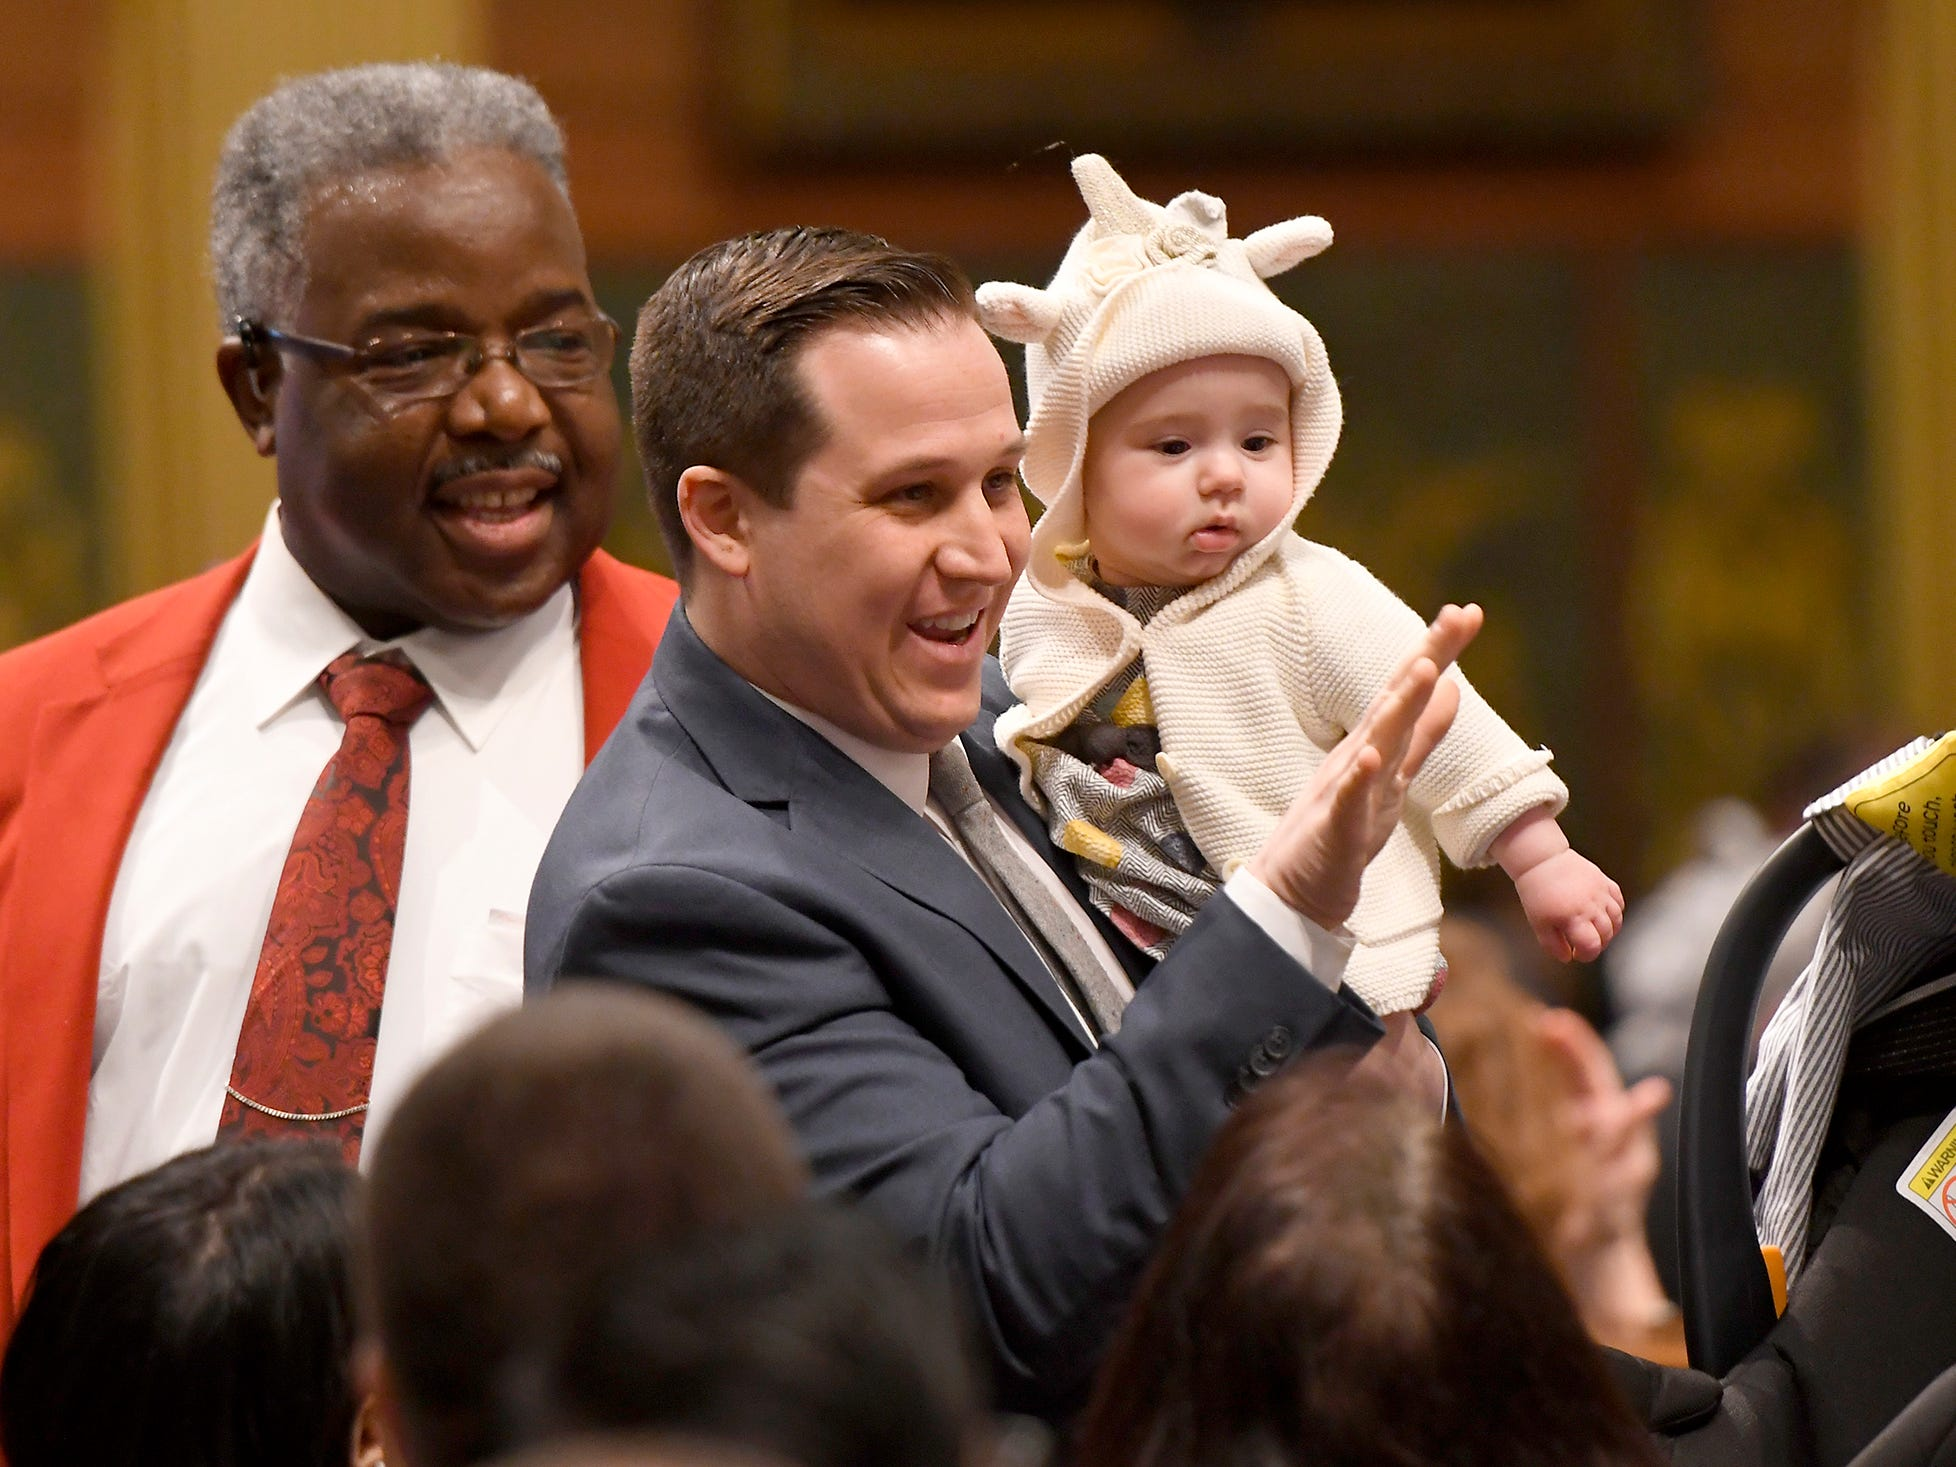 State Rep. Robert Wittenberg, D-27th District, waves to colleagues with daughter Ada, 6 months, before the opening  ceremonies.